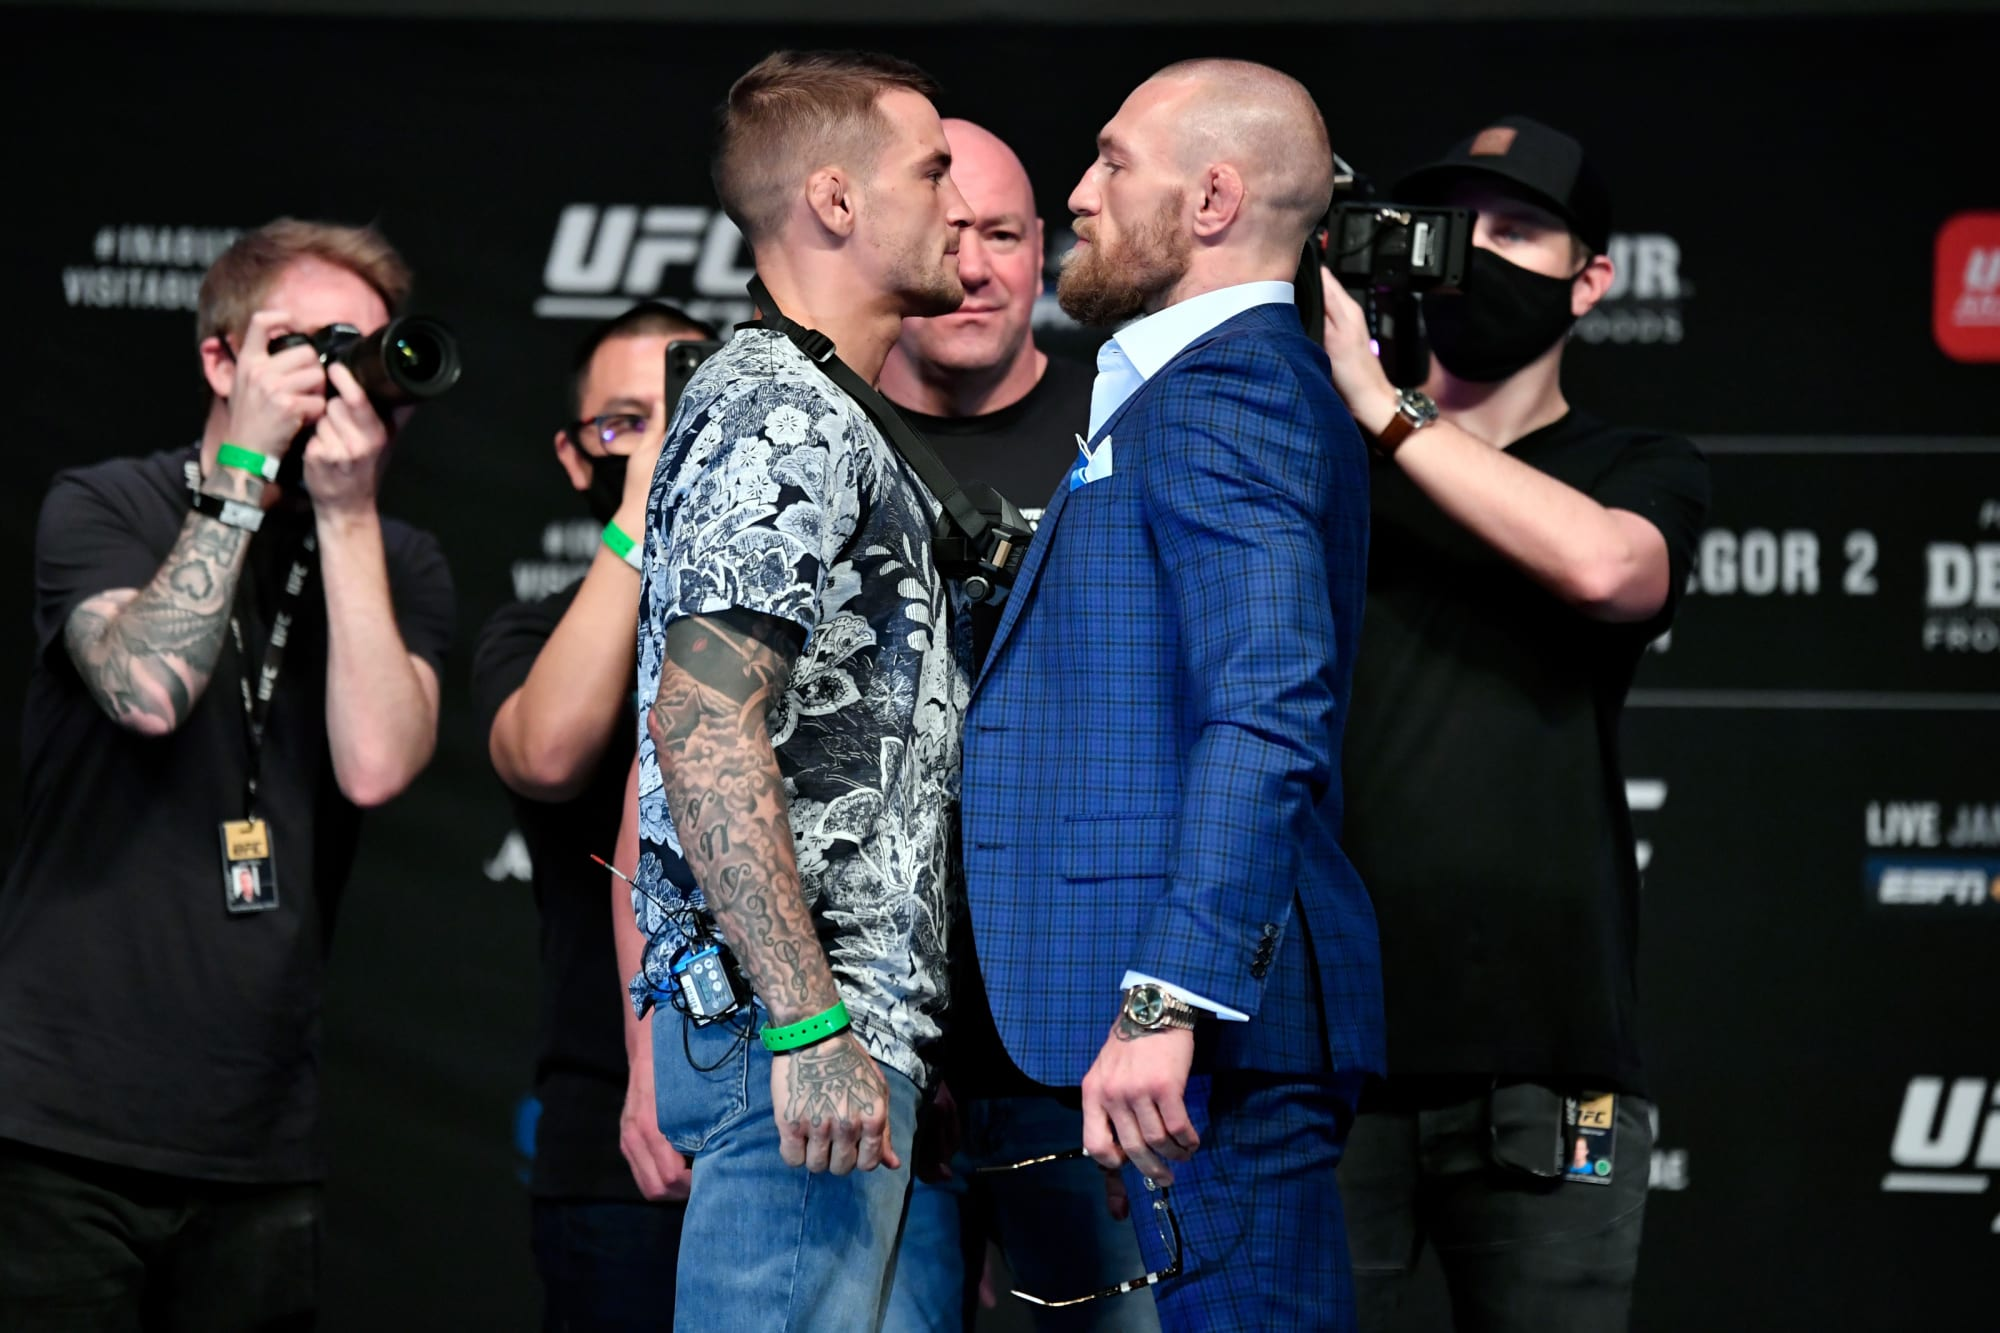 Pros are eating up the Conor McGregor, Dustin Poirier drama like it's Thanksgiving day